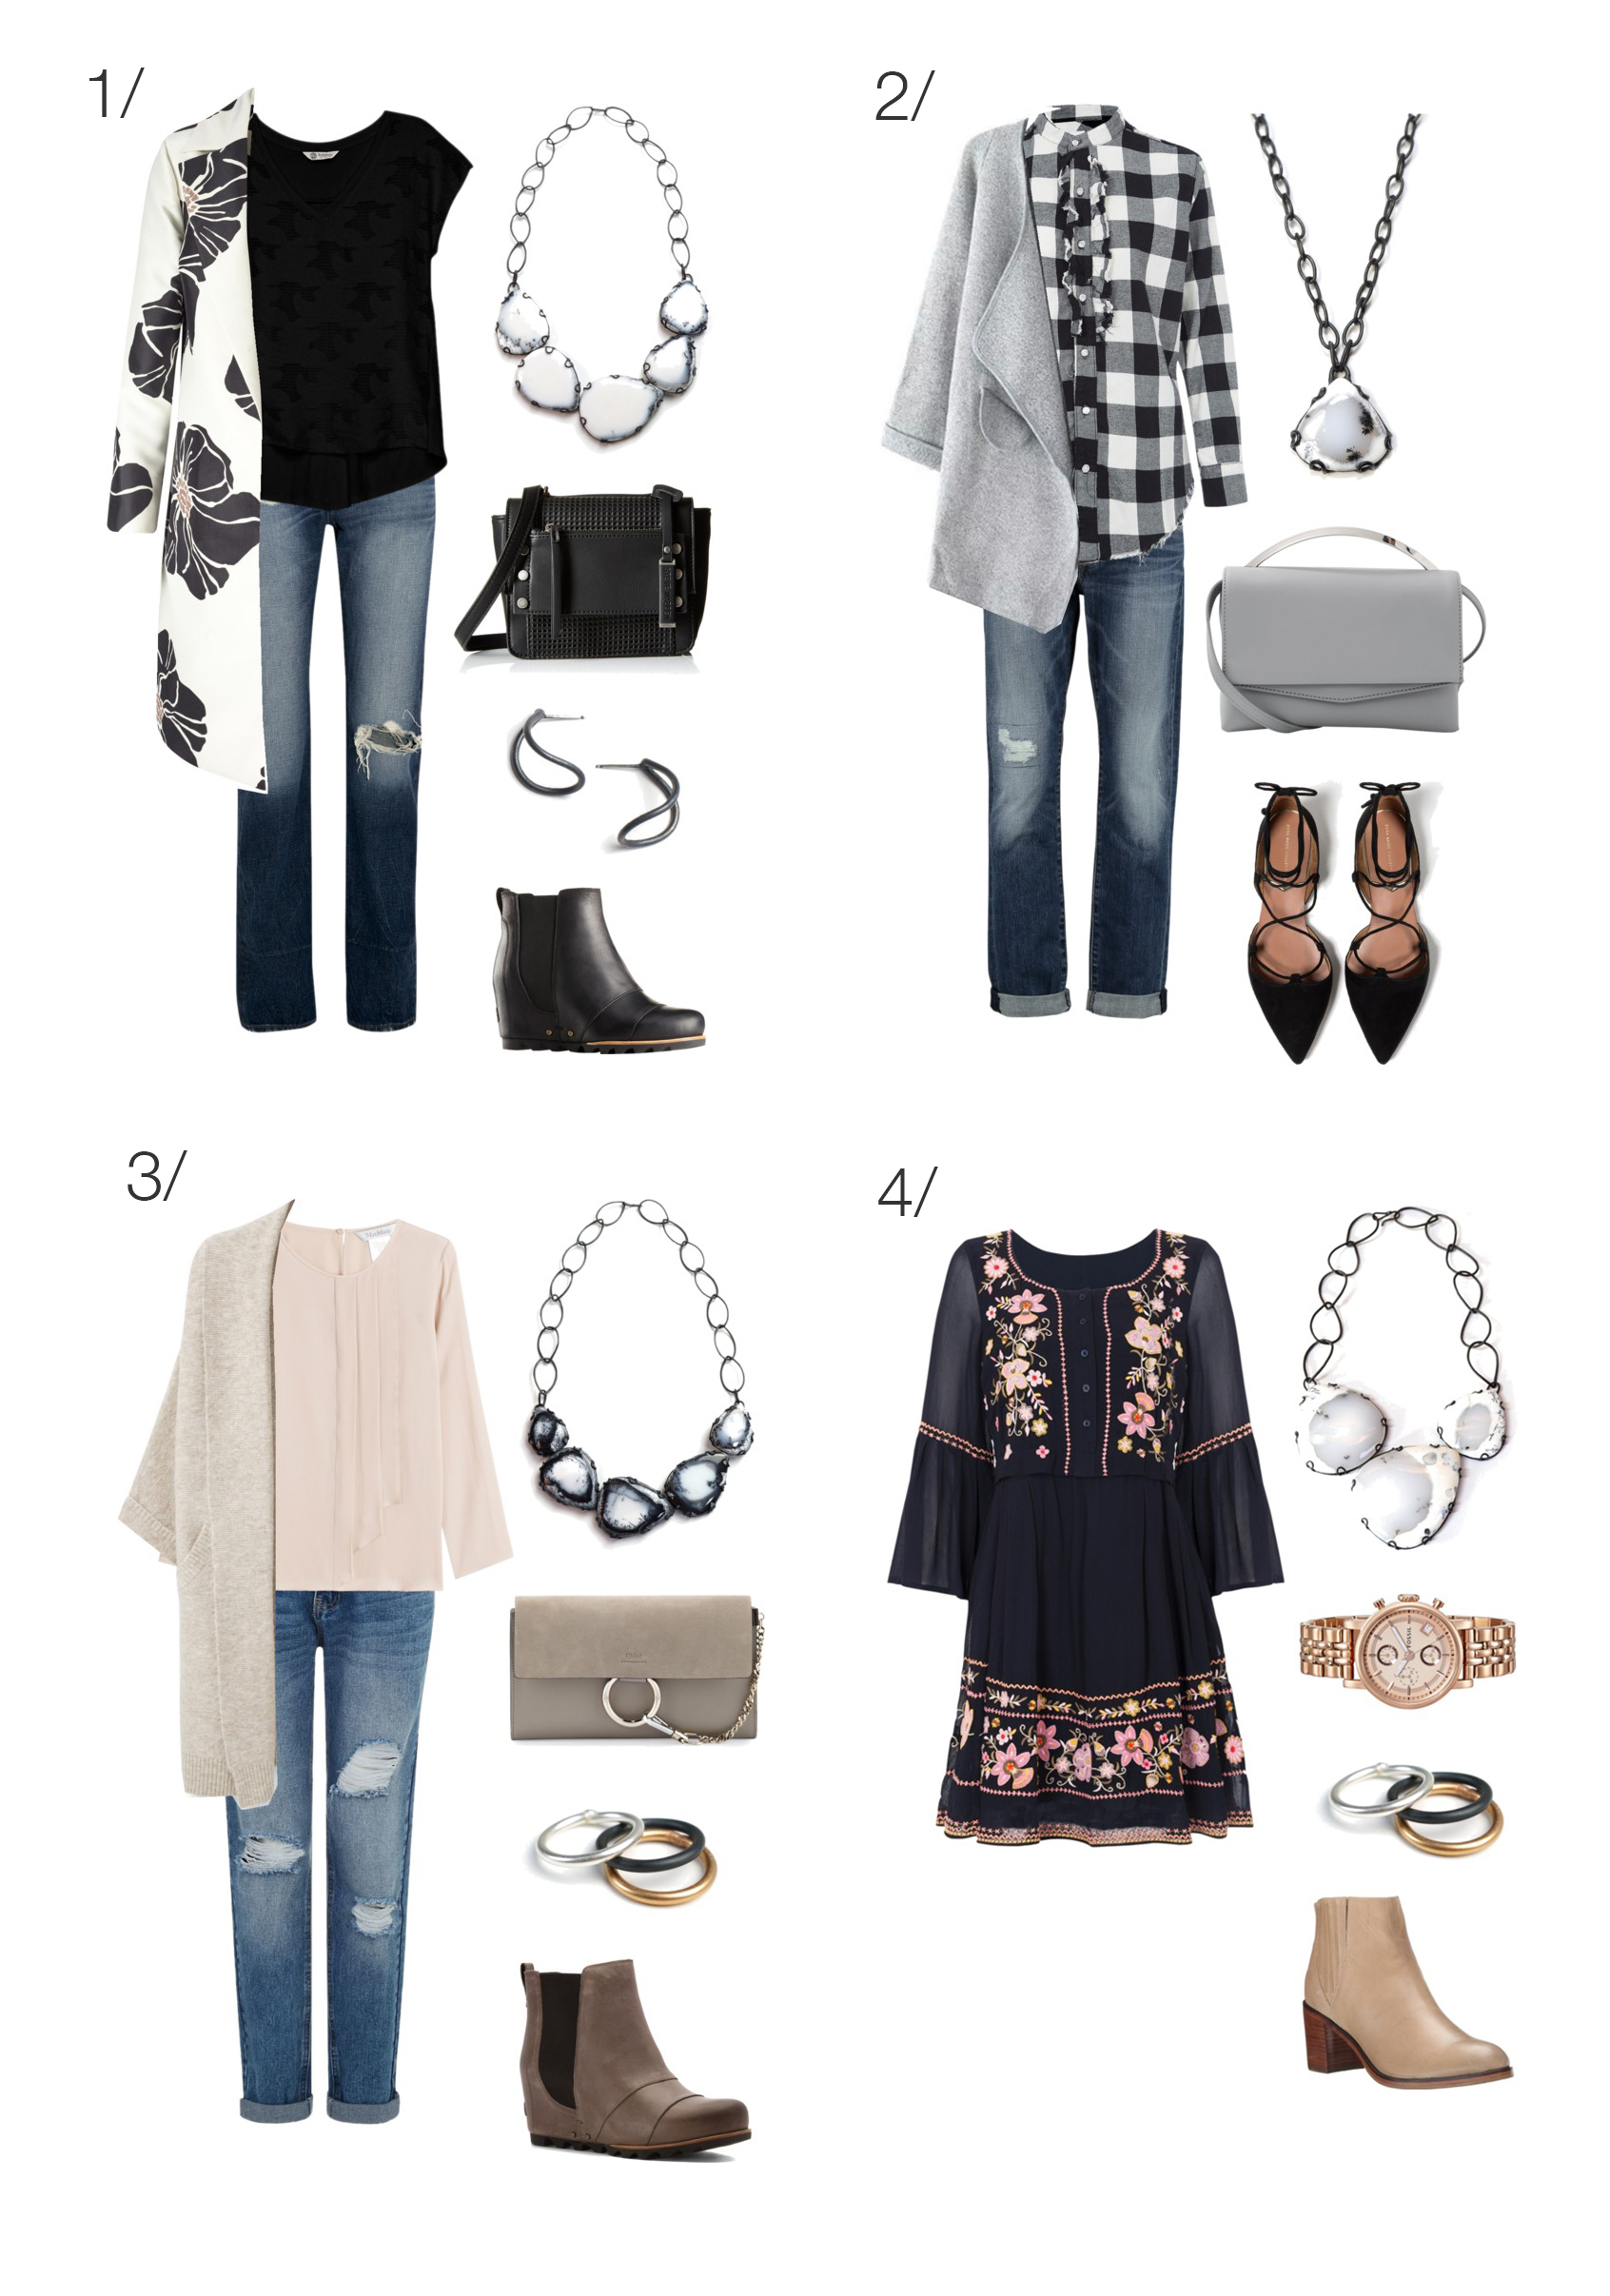 what to wear to Thanksgiving dinner: 8 outfit ideas to try // click through to see all the looks